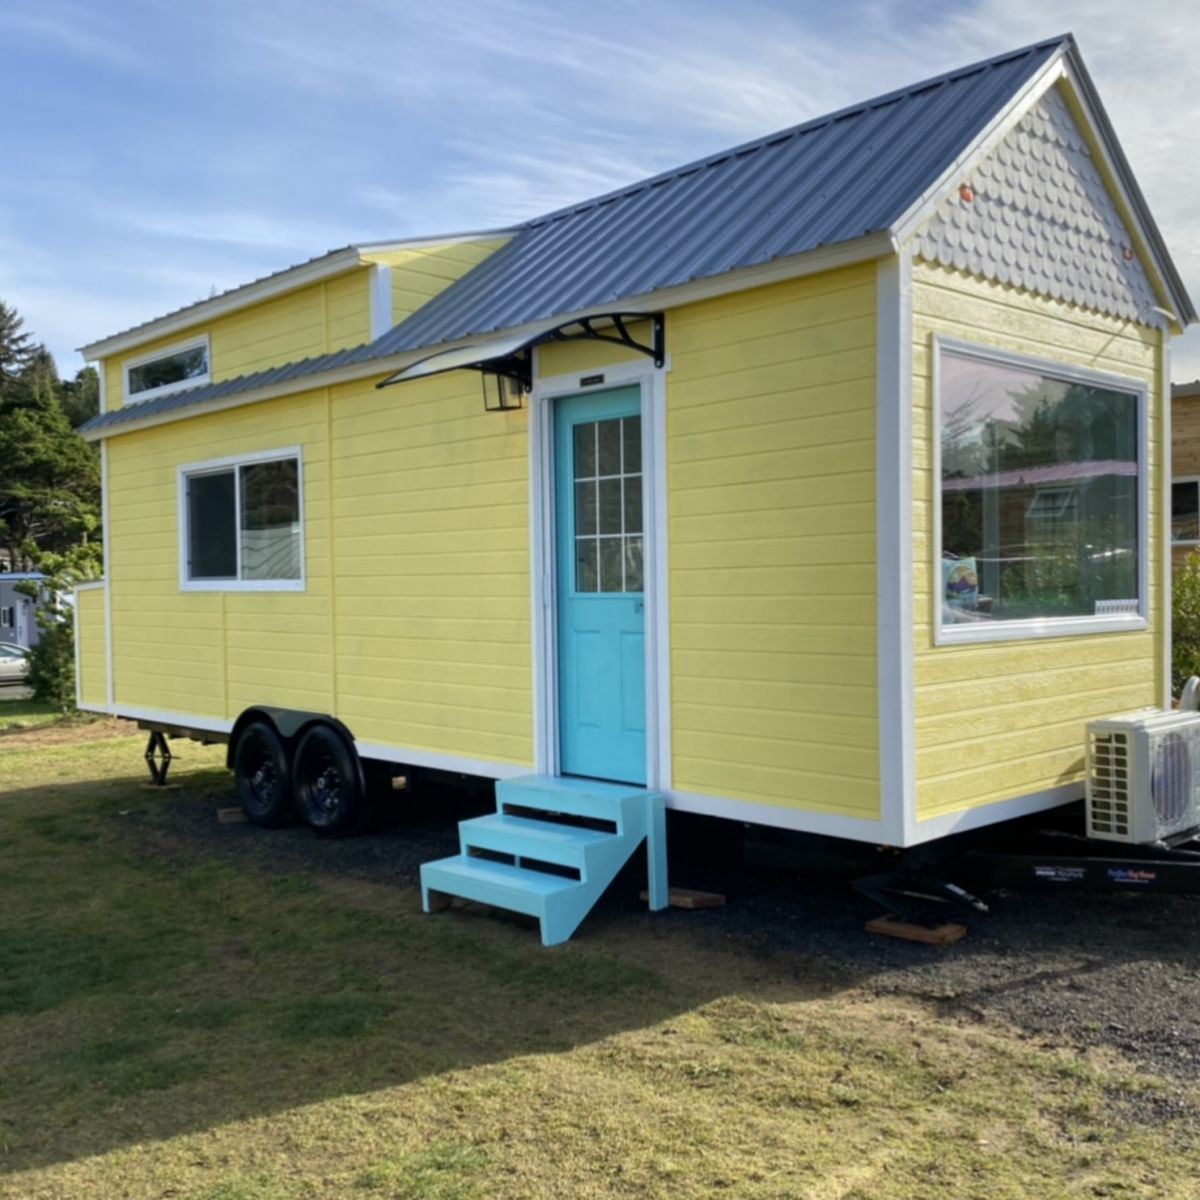 Spacious and Luxurious Tiny Homes: Bay Cottage and Tiny Victorian - Tiny  House for Rent in Pacifica, California - Tiny House Listings